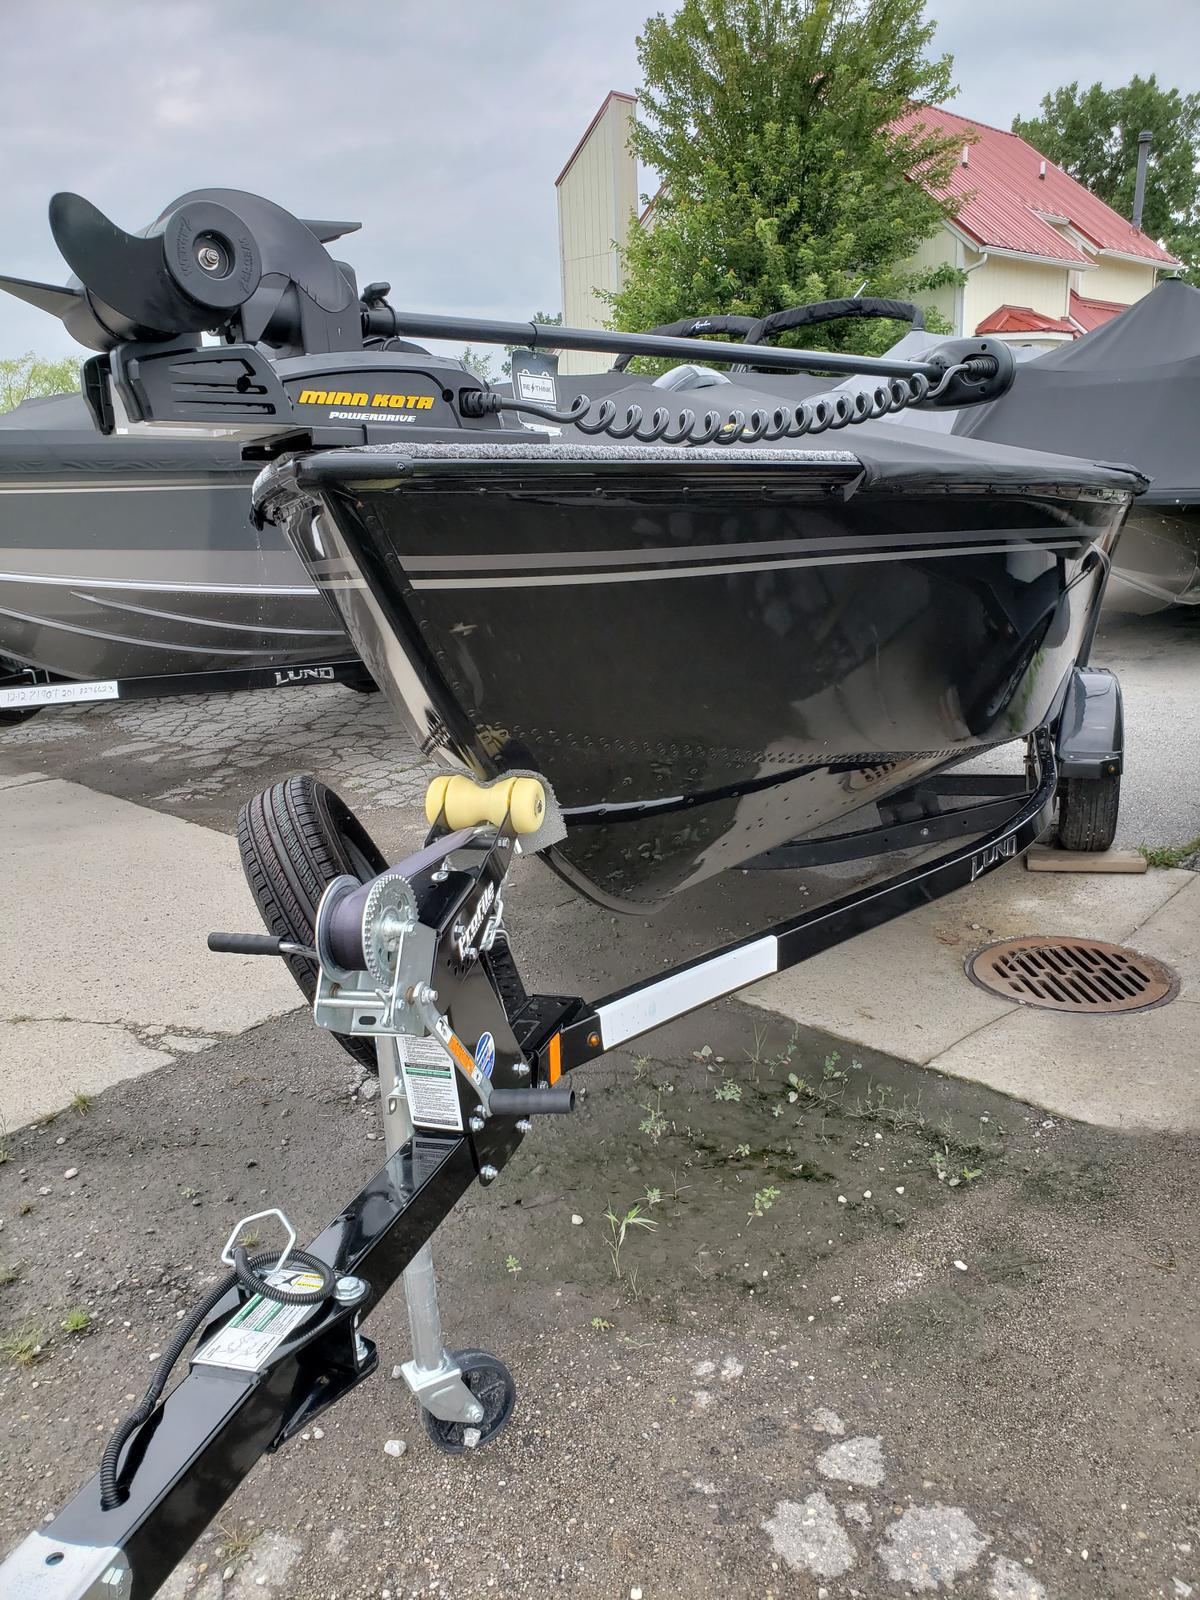 2018 Lund 1650 Rebel Xs Ss For Sale In Algonac Mi Rose Marine Tow Harness Self Center Stock